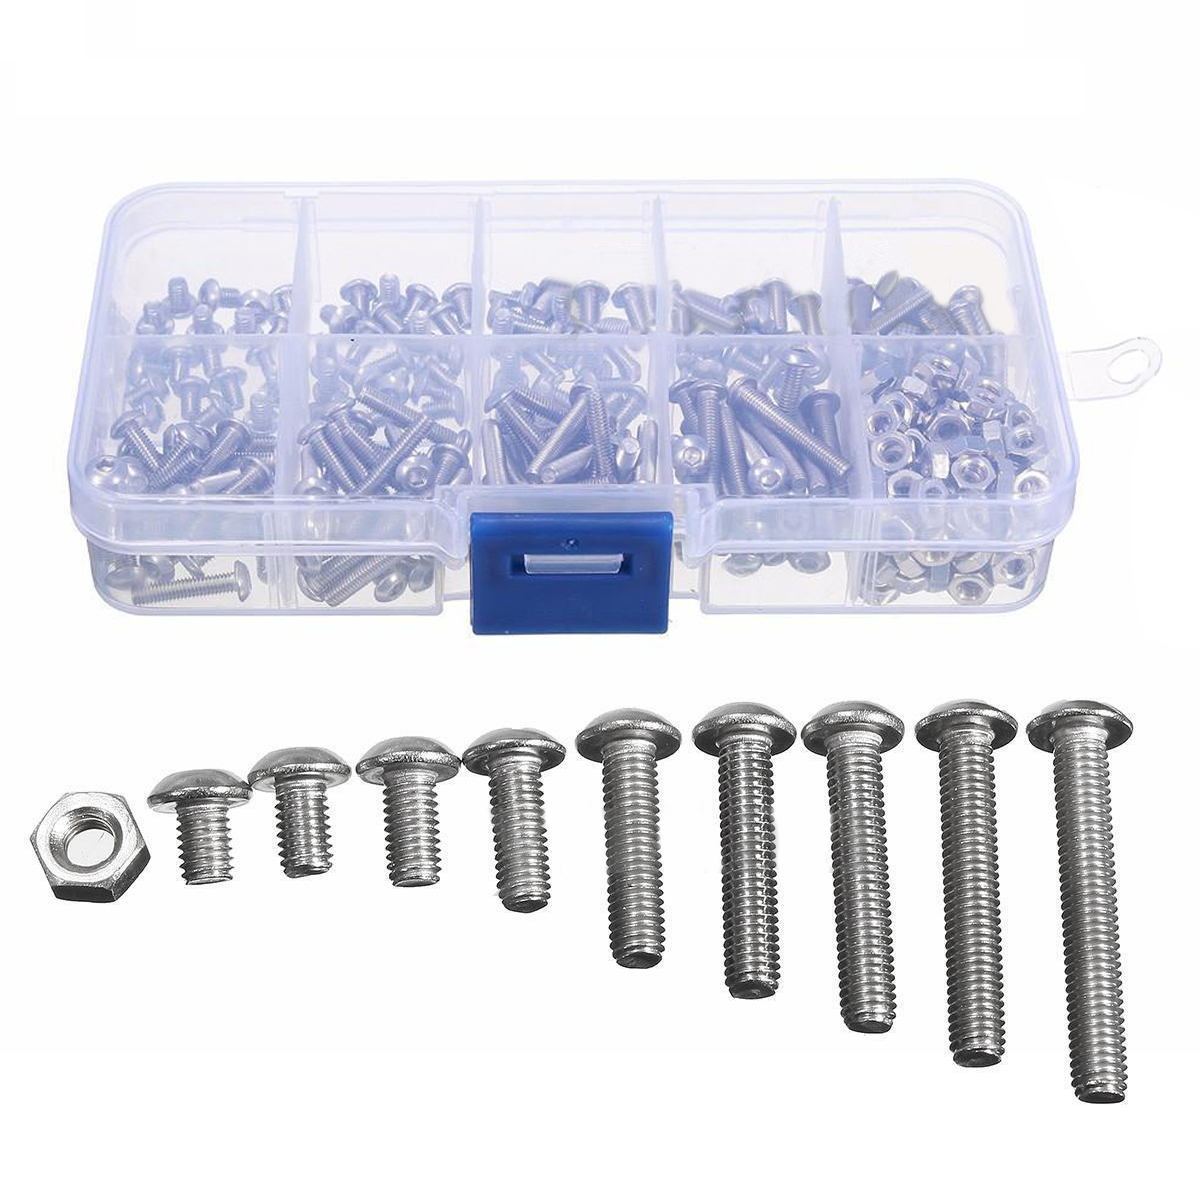 340pcs M3 A2 Hex Screw Set Stainless Steel Nuts Bolt Cap Socket Assortment Kit 125x65x22mm with Case For Hardware Accessories 250pcs set m3 5 6 8 10 12 14 16 20 25mm hex socket head cap screw stainless steel m3 screw accessories kit sample box